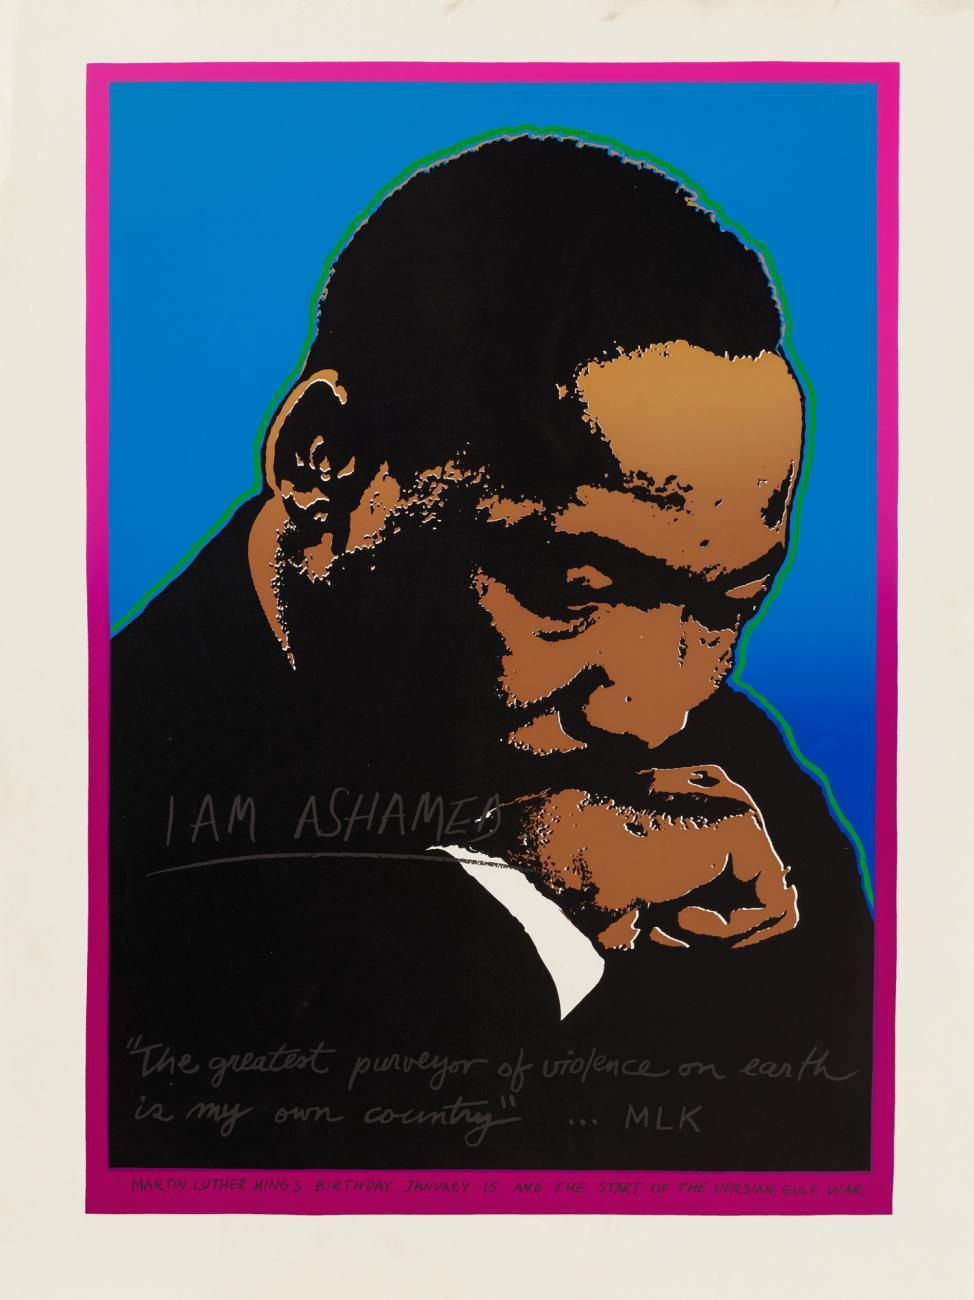 An artwork of MLK